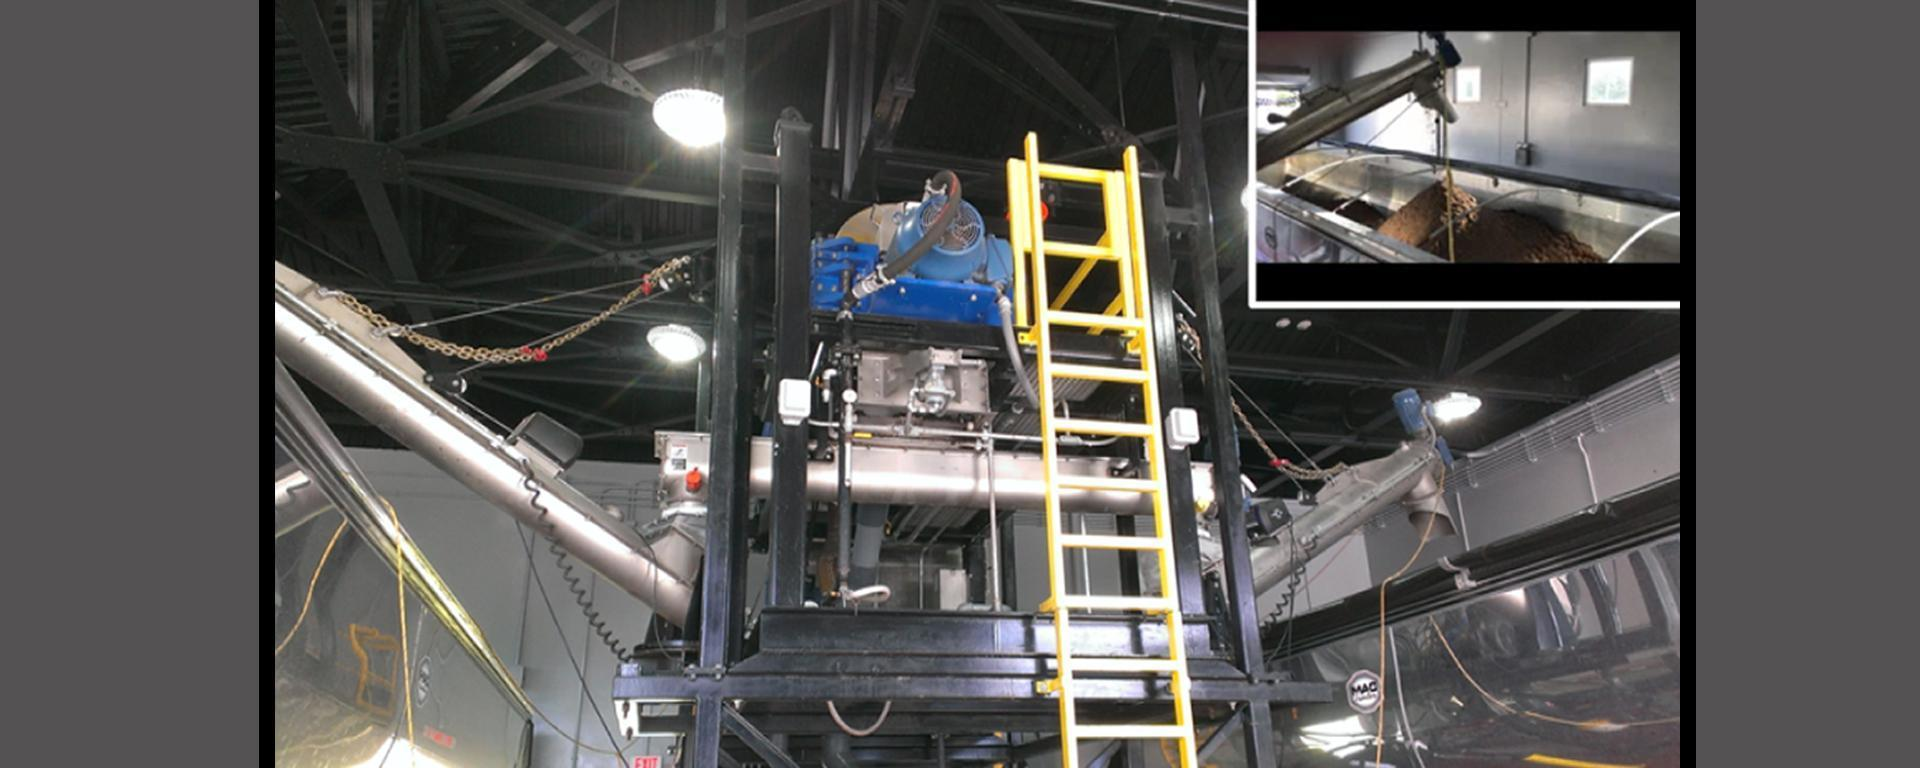 Tropical Farms sewage sludge centrifuge, a high speed, rapid rotation process to separate wastewater solids from liquid.  The end result is approximately 18% - 20% solids product material.